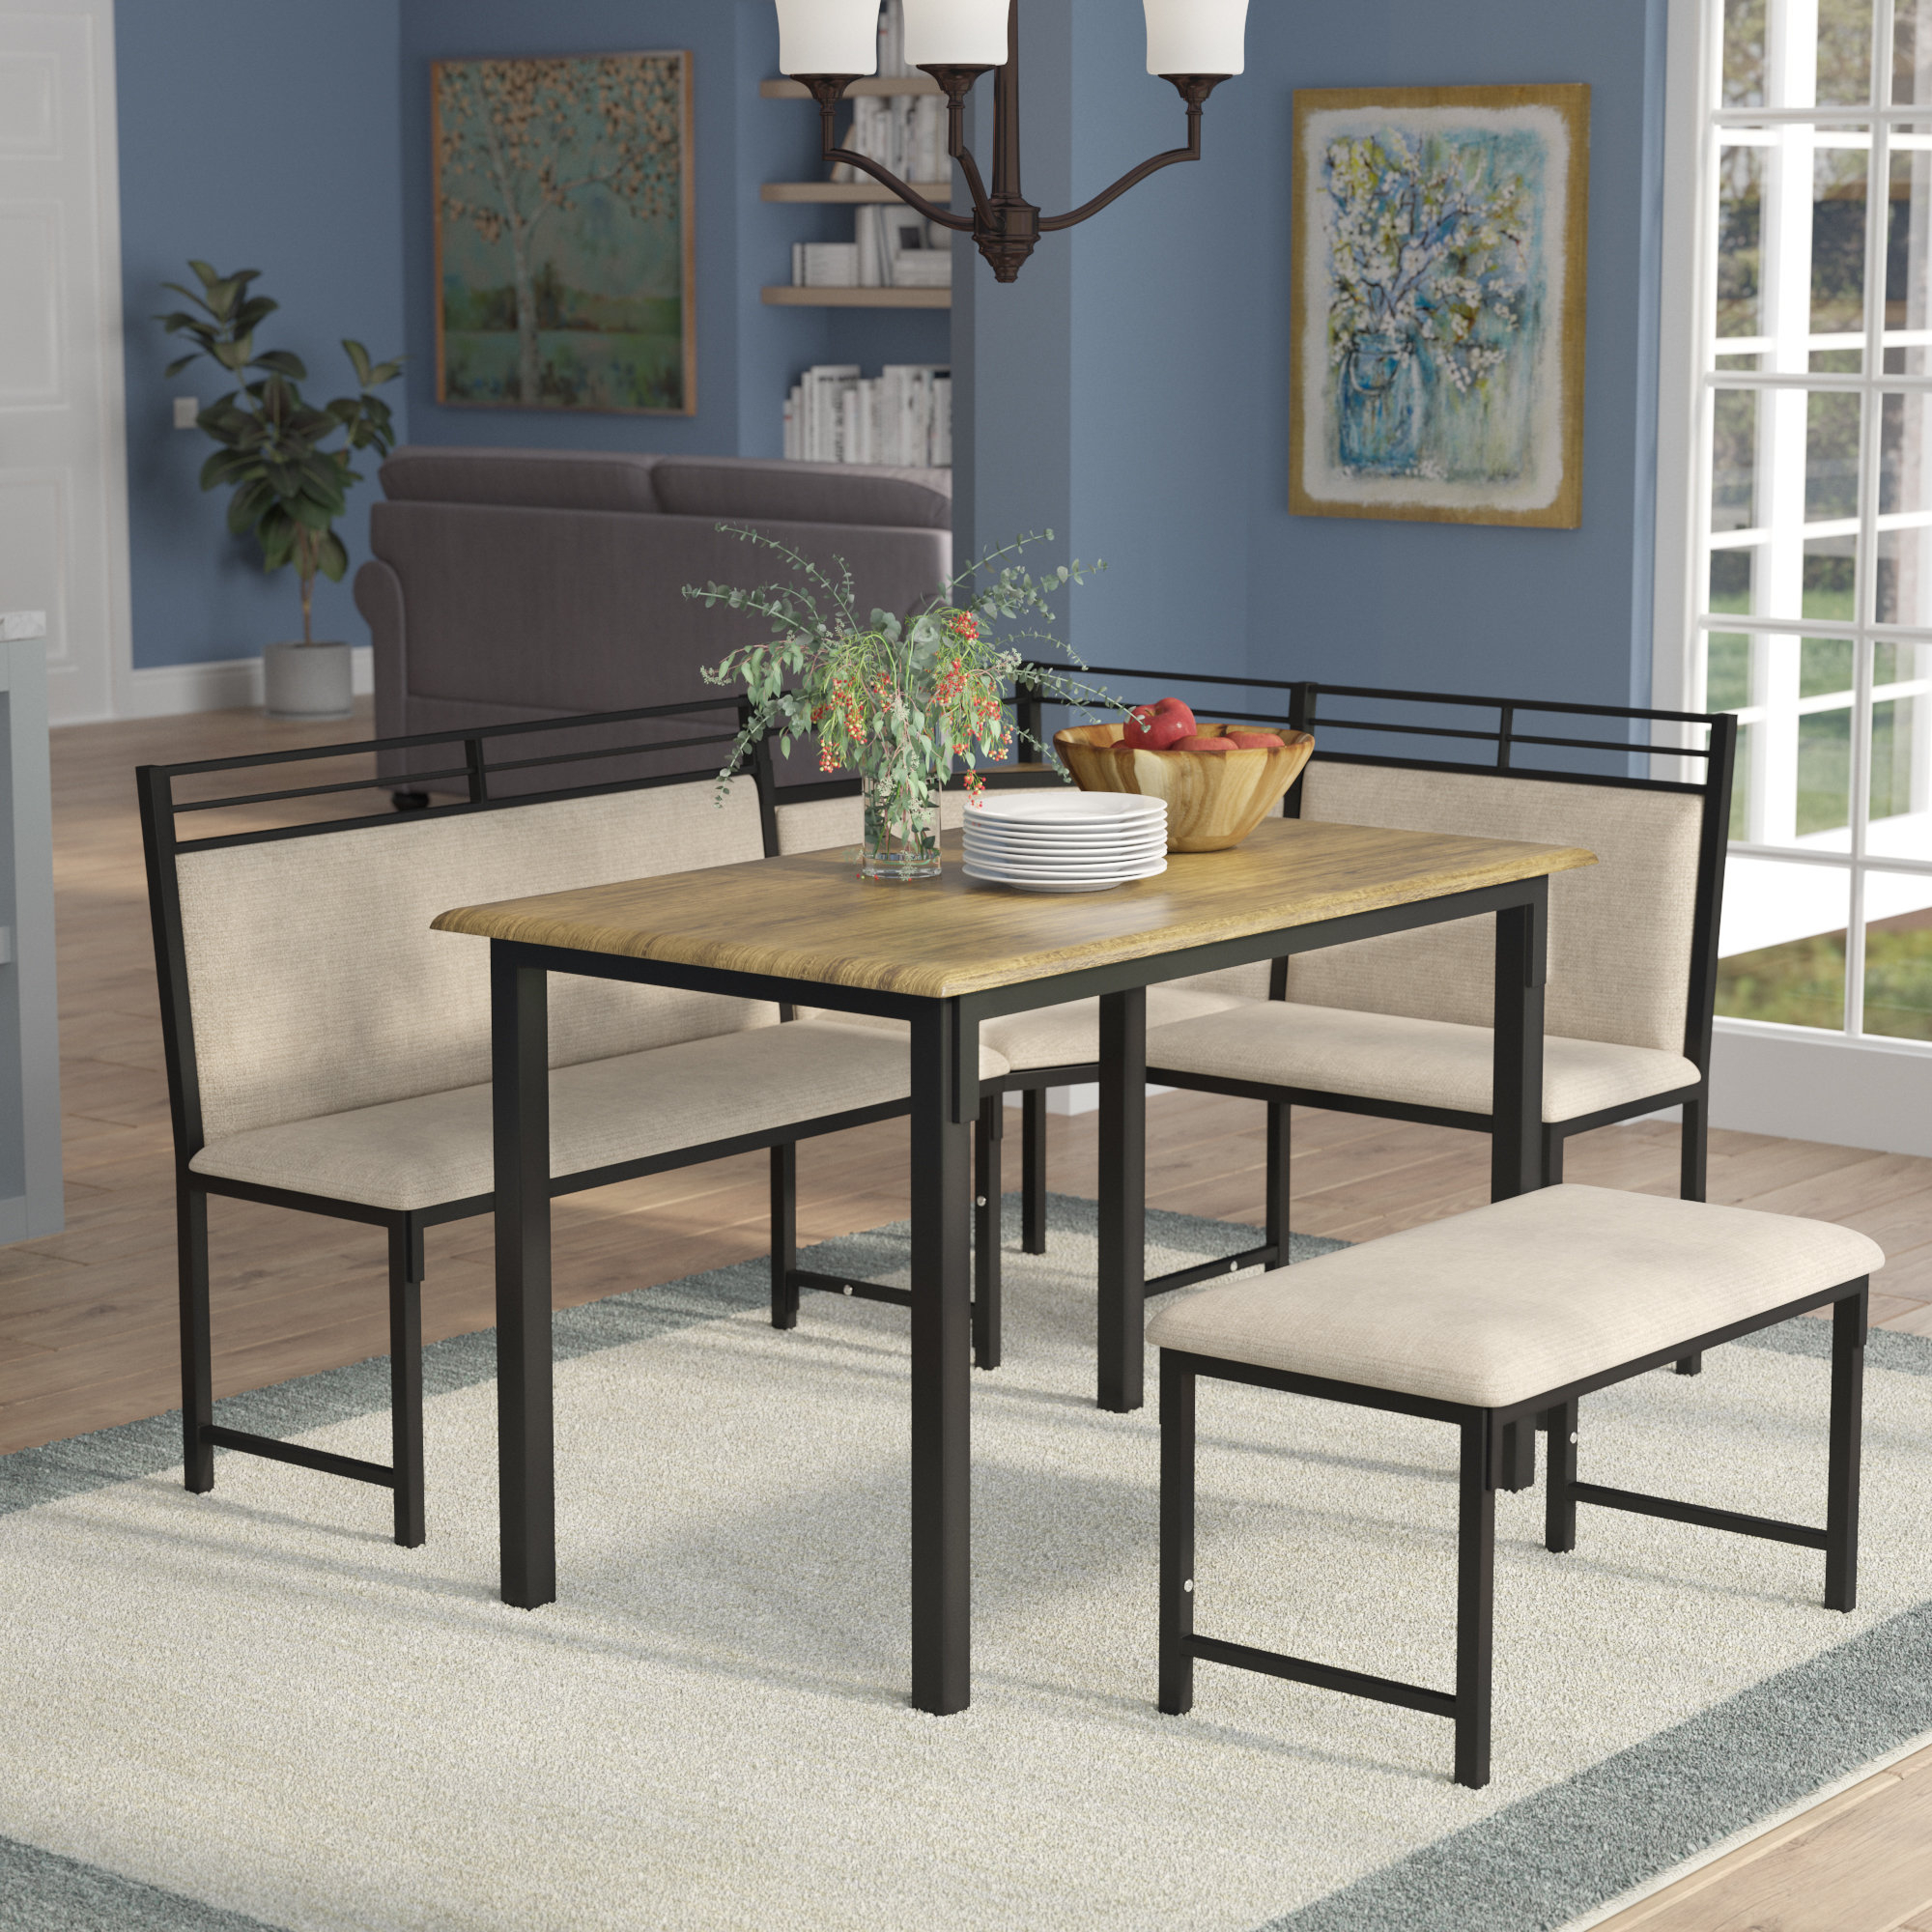 Moonachie Corner 3 Piece Dining Set Within 2018 Rossiter 3 Piece Dining Sets (View 11 of 20)